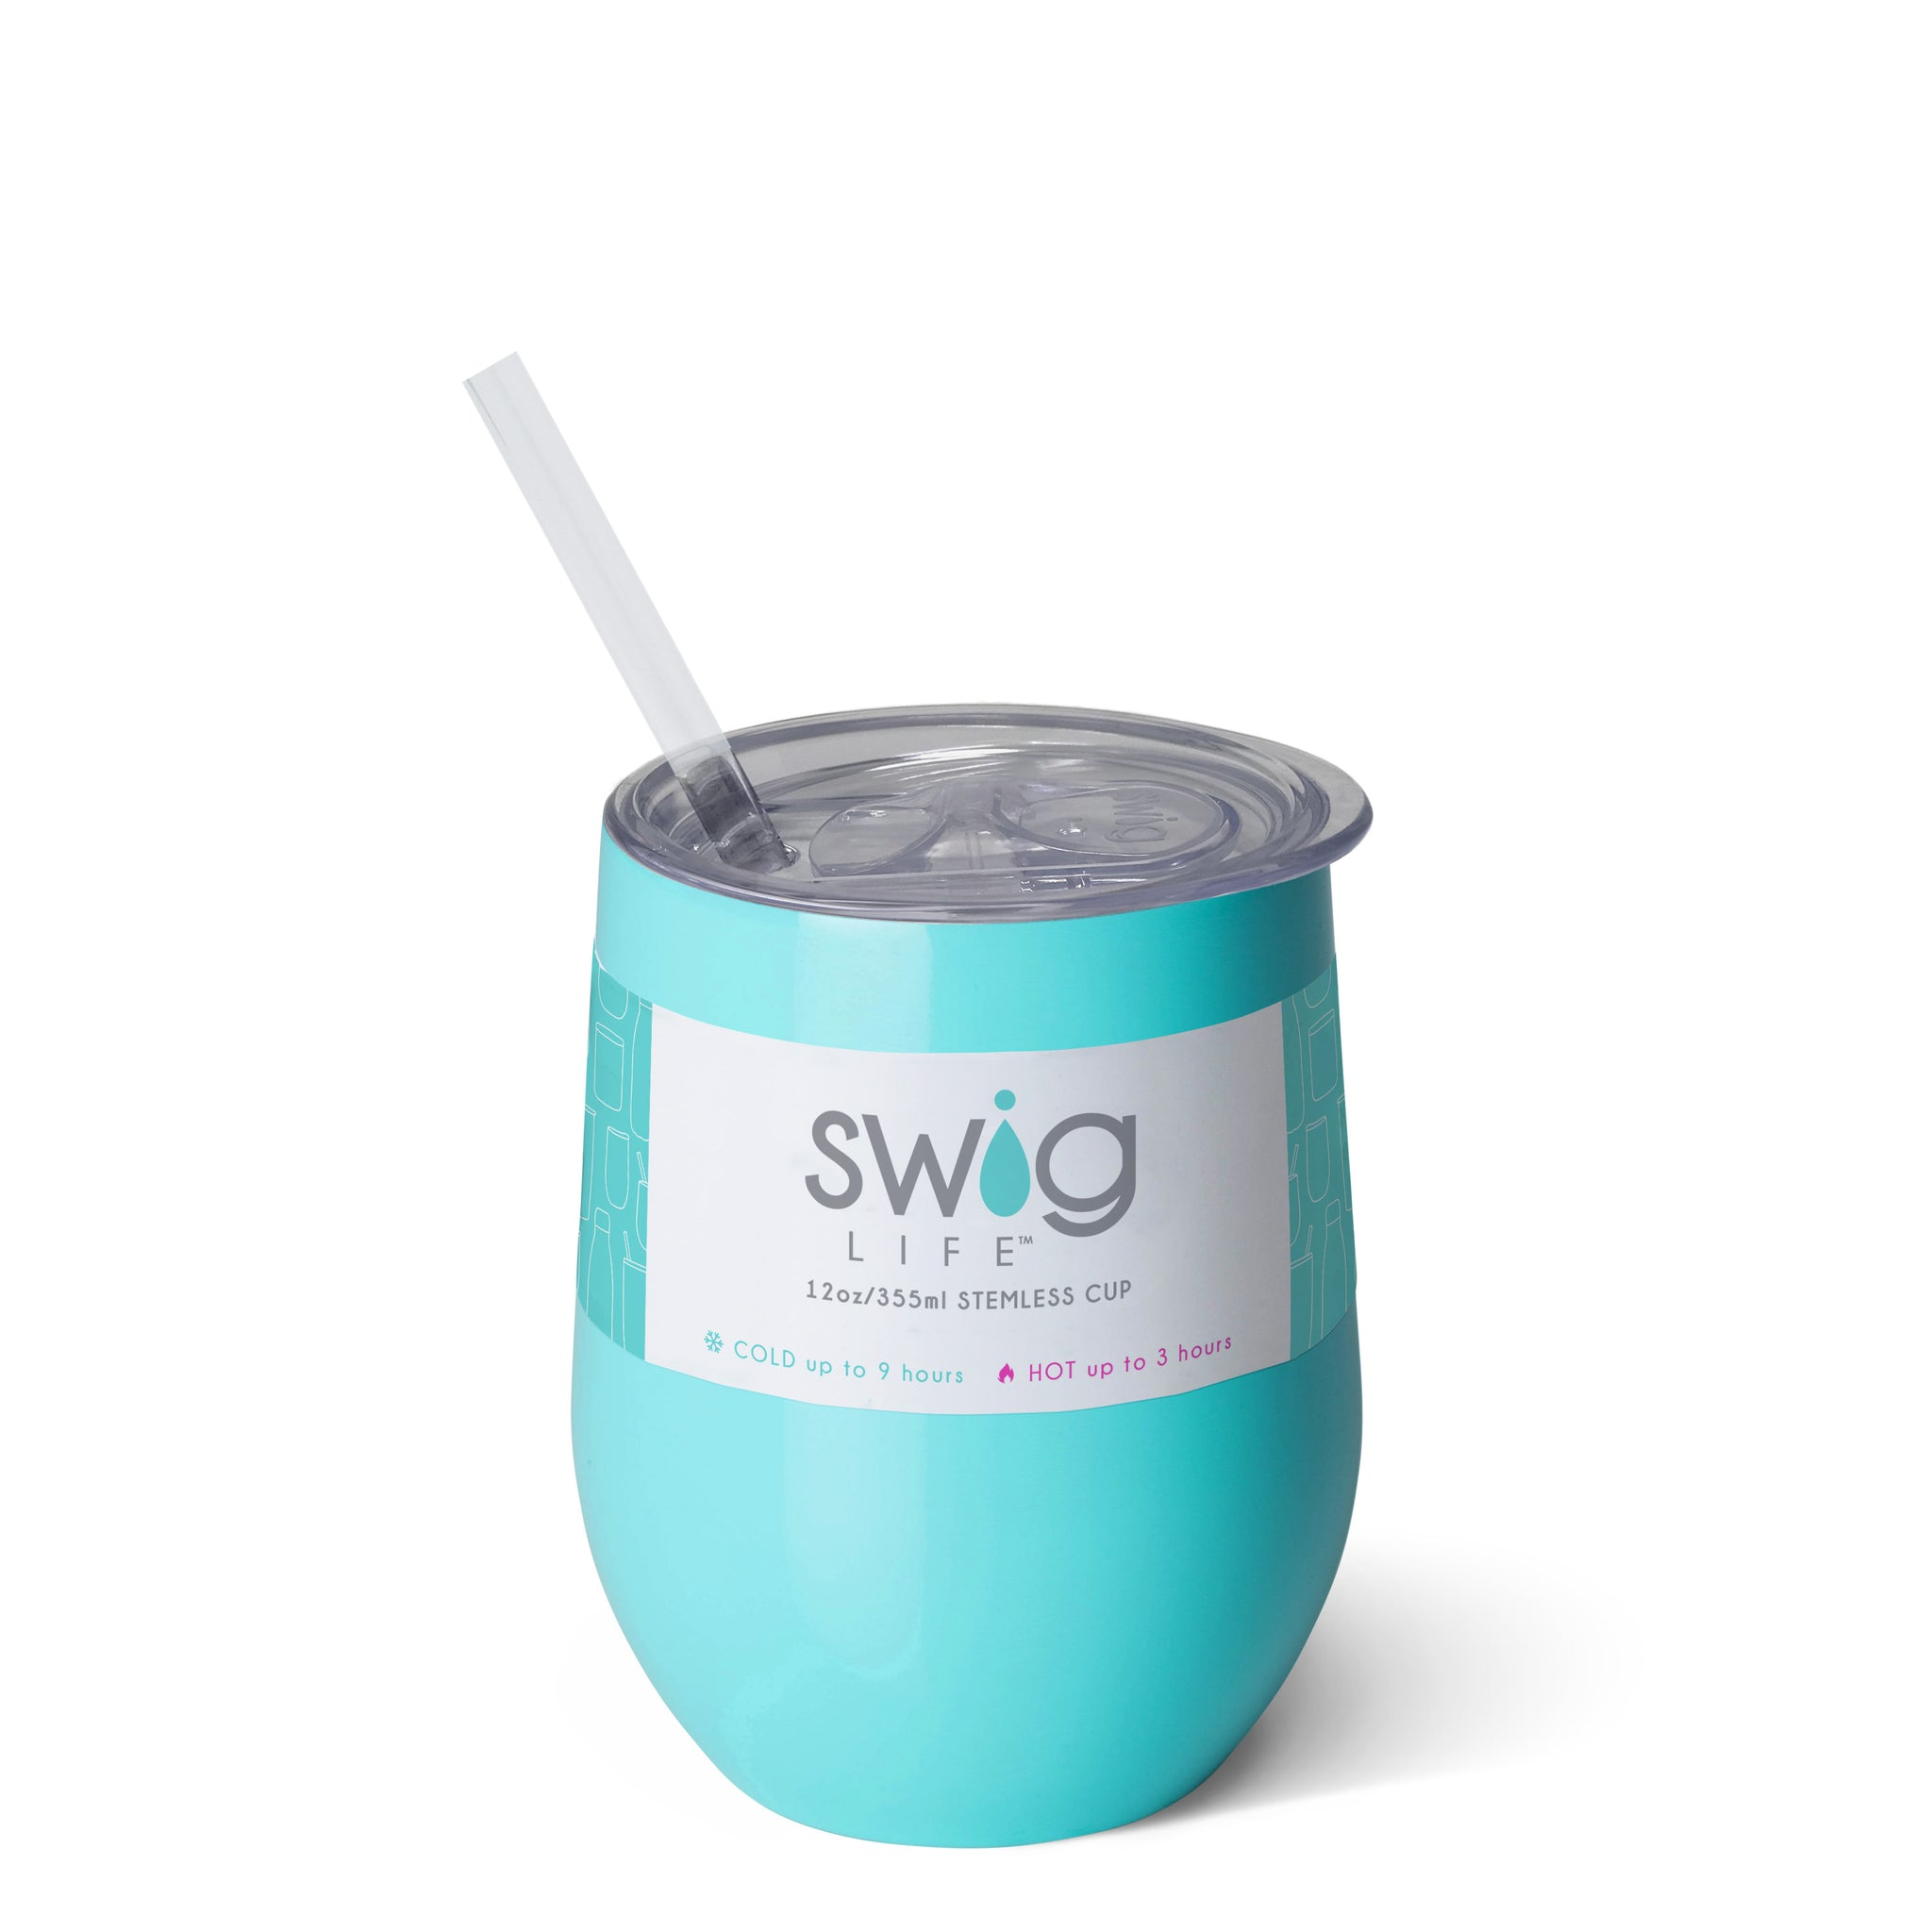 Swig Life - Ocean 12oz Wine with Slider Lid